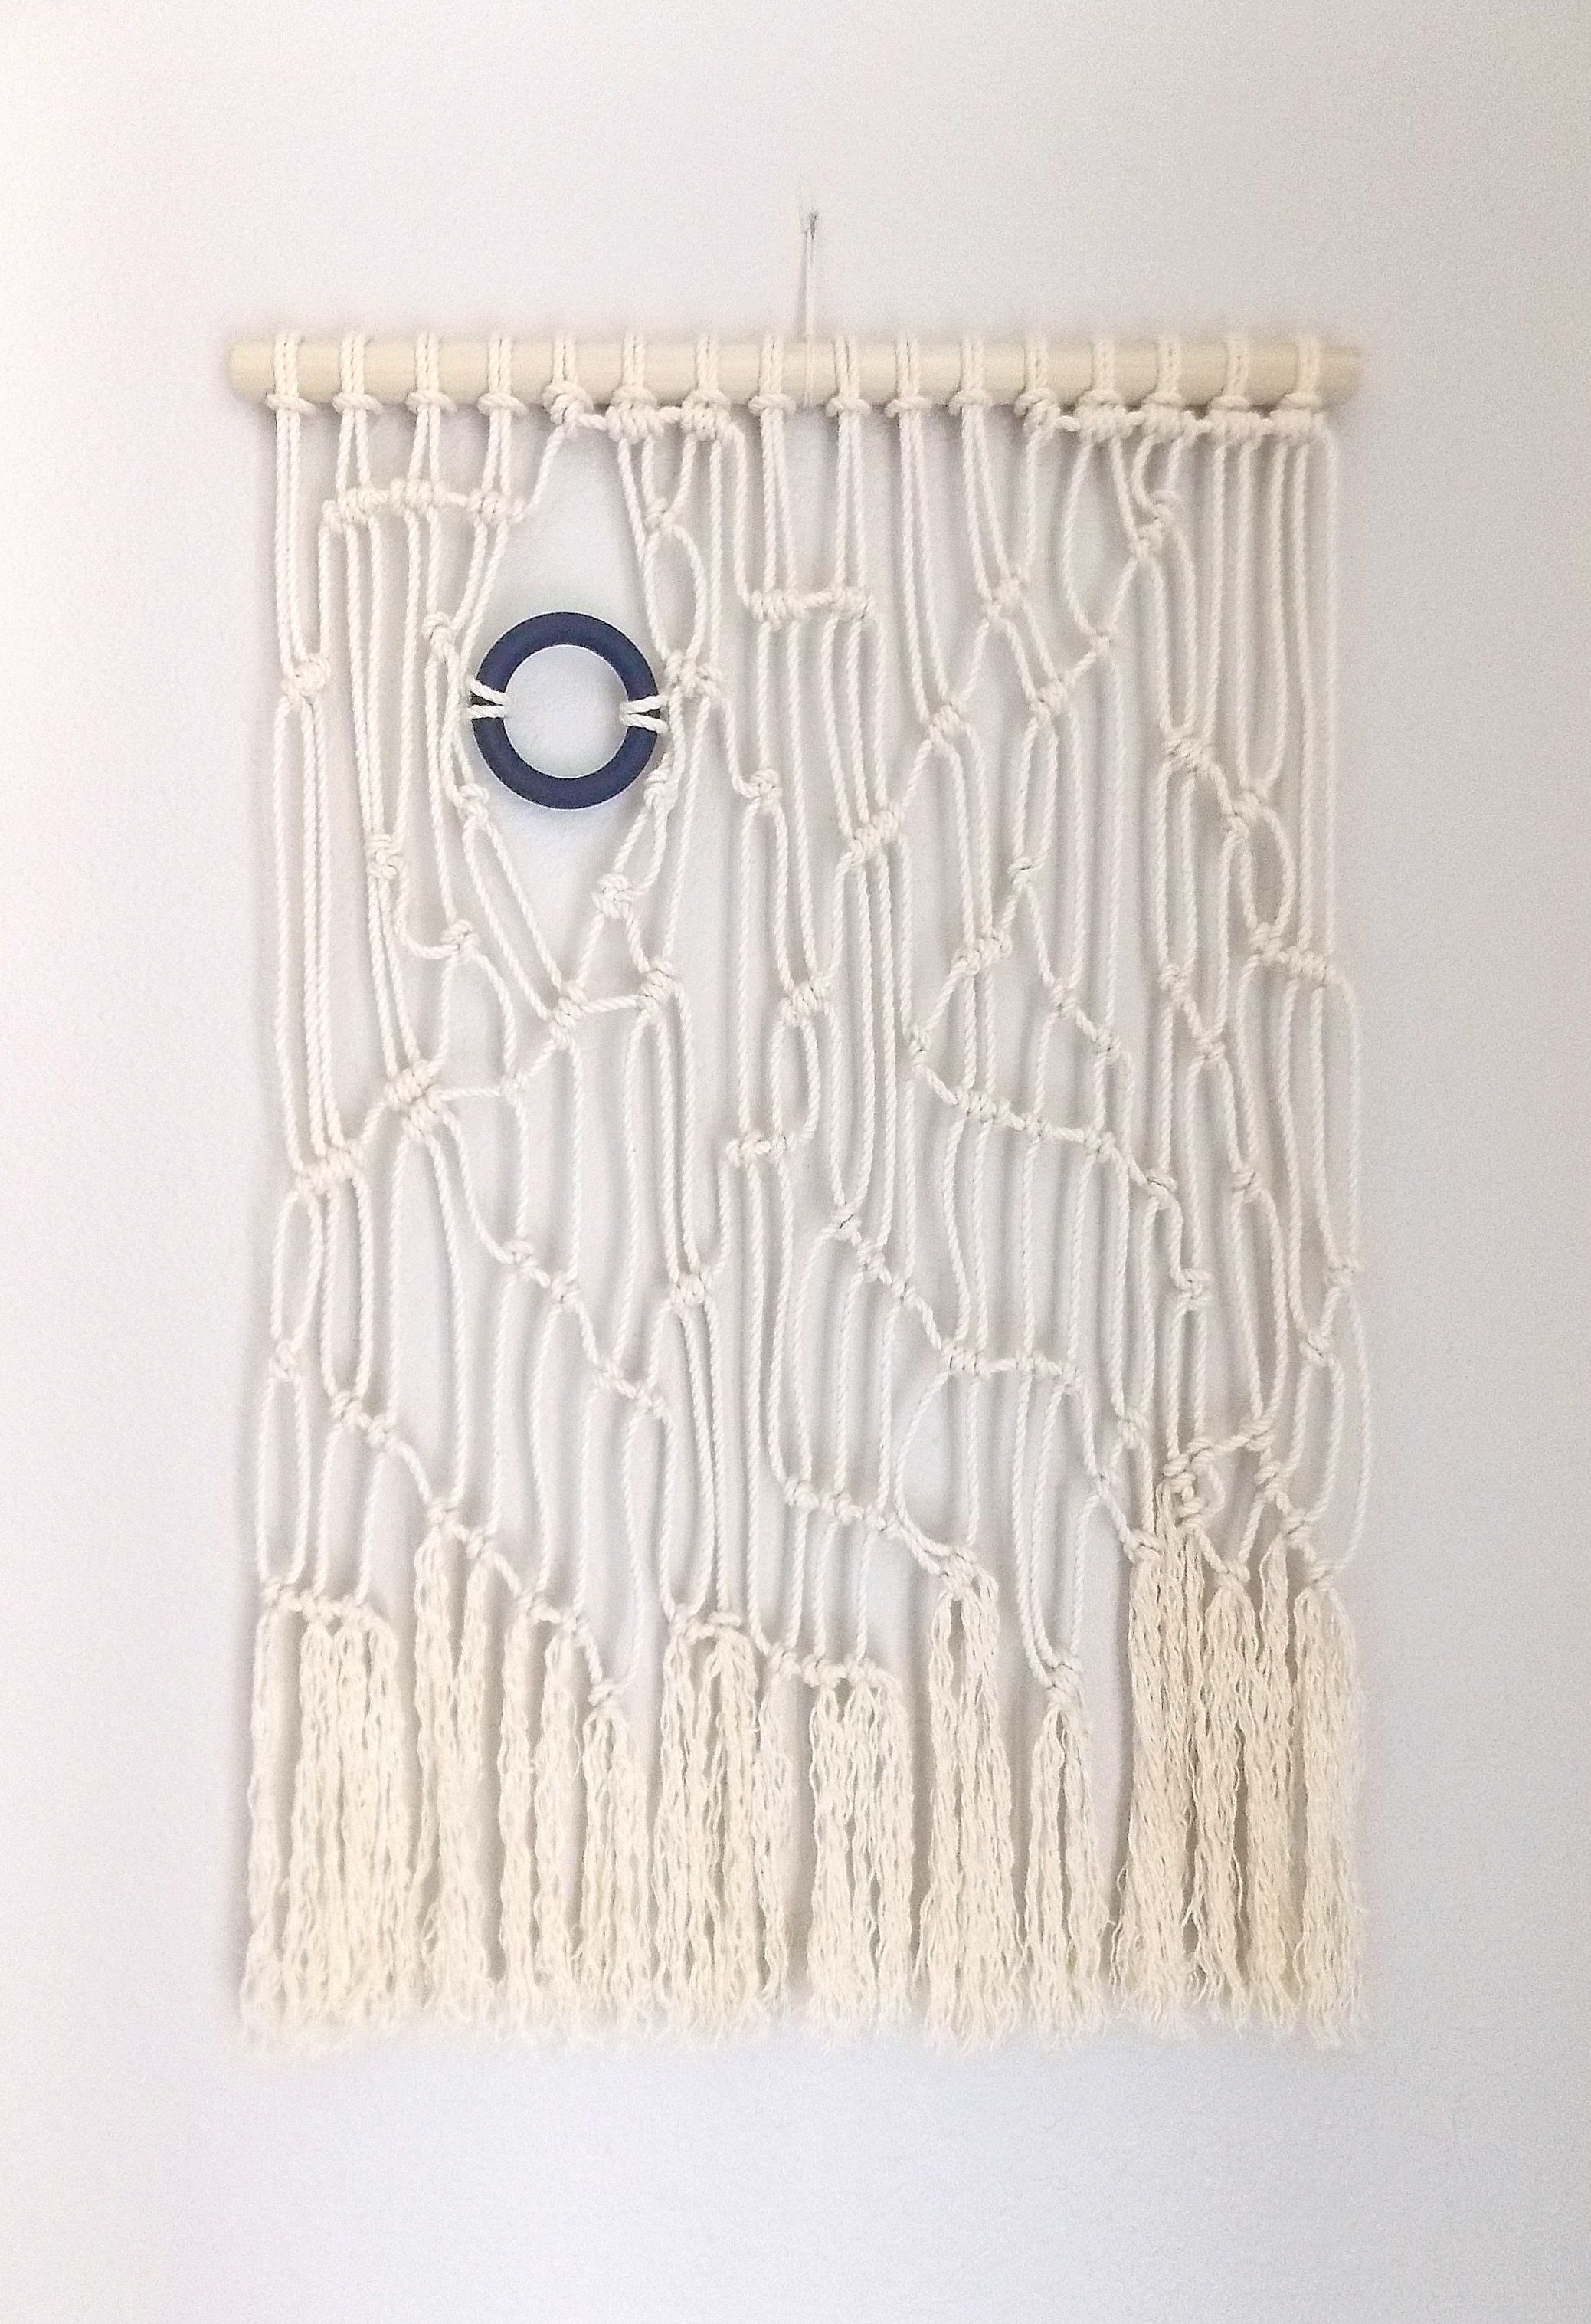 macrame wall hanging outfitters himo for outfitters modern macrame wall hanging 5984